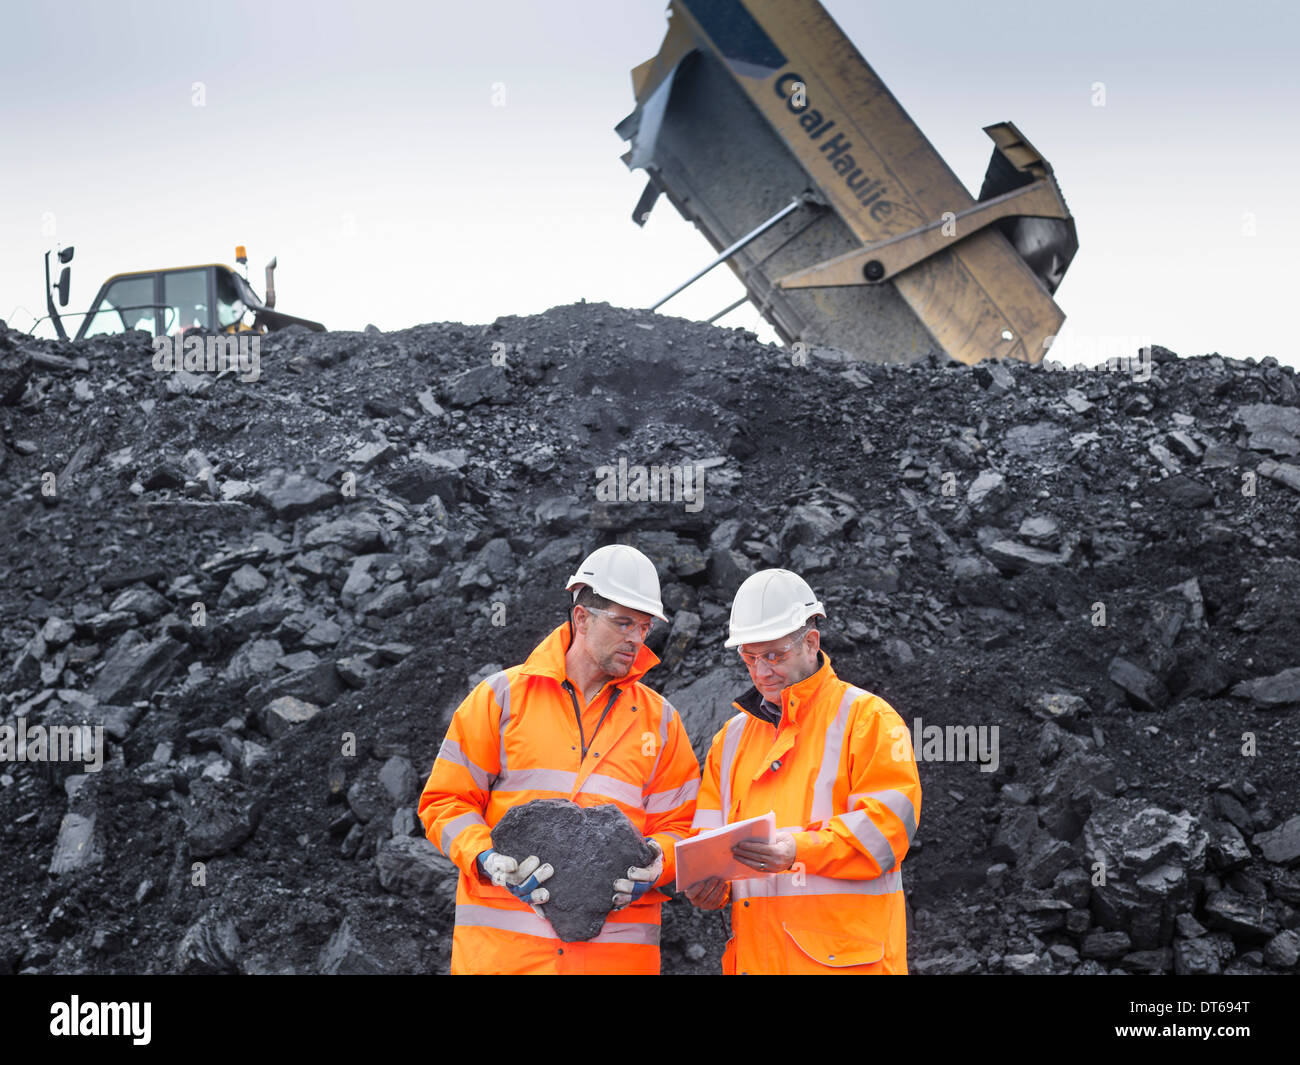 Coal miners inspecting coal in surface coal mine - Stock Image